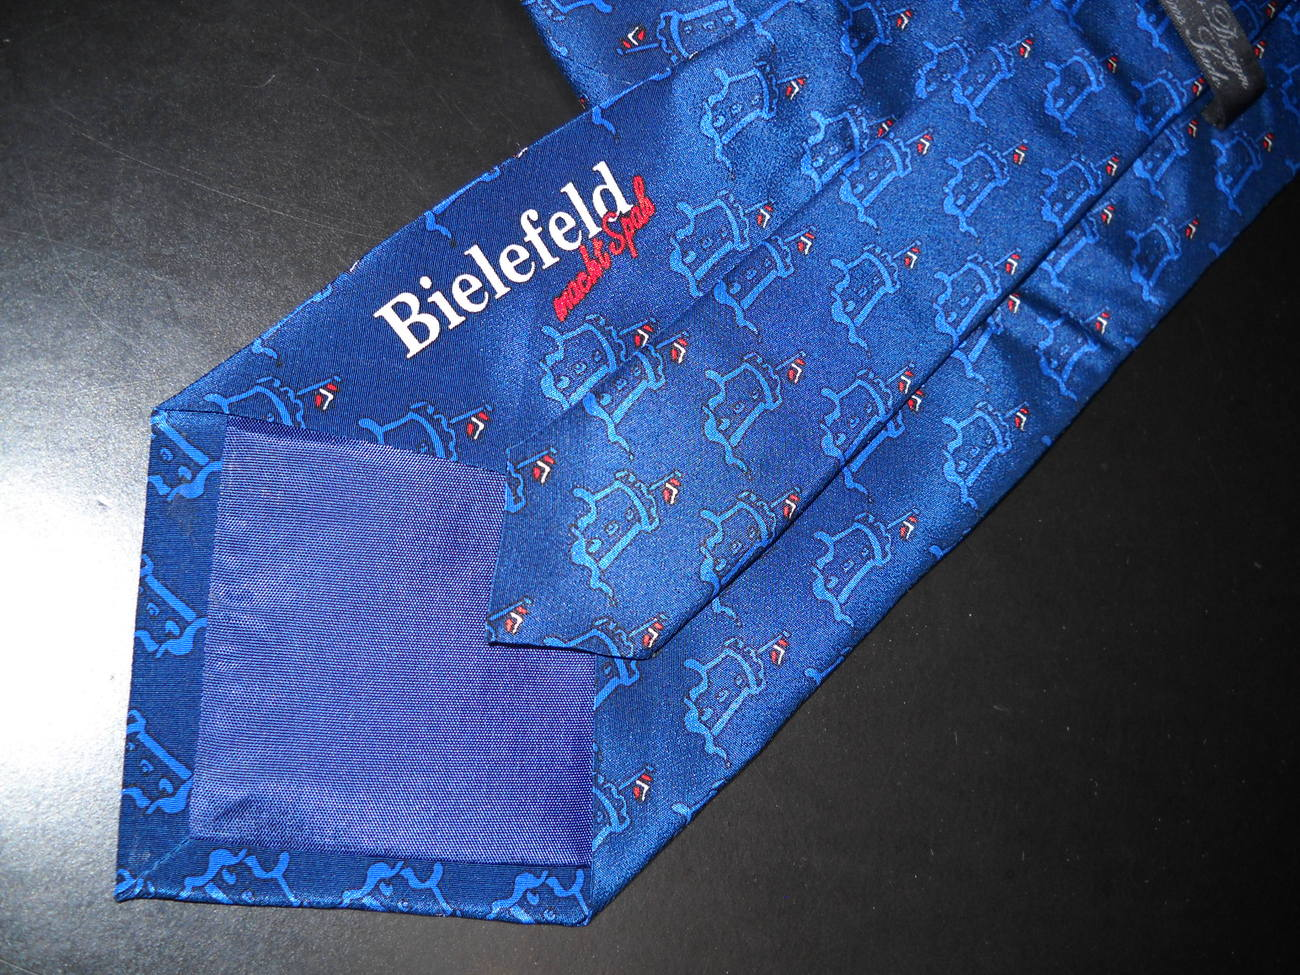 Bielefeld Germany Sparrenburg Castle Neck Tie Blues